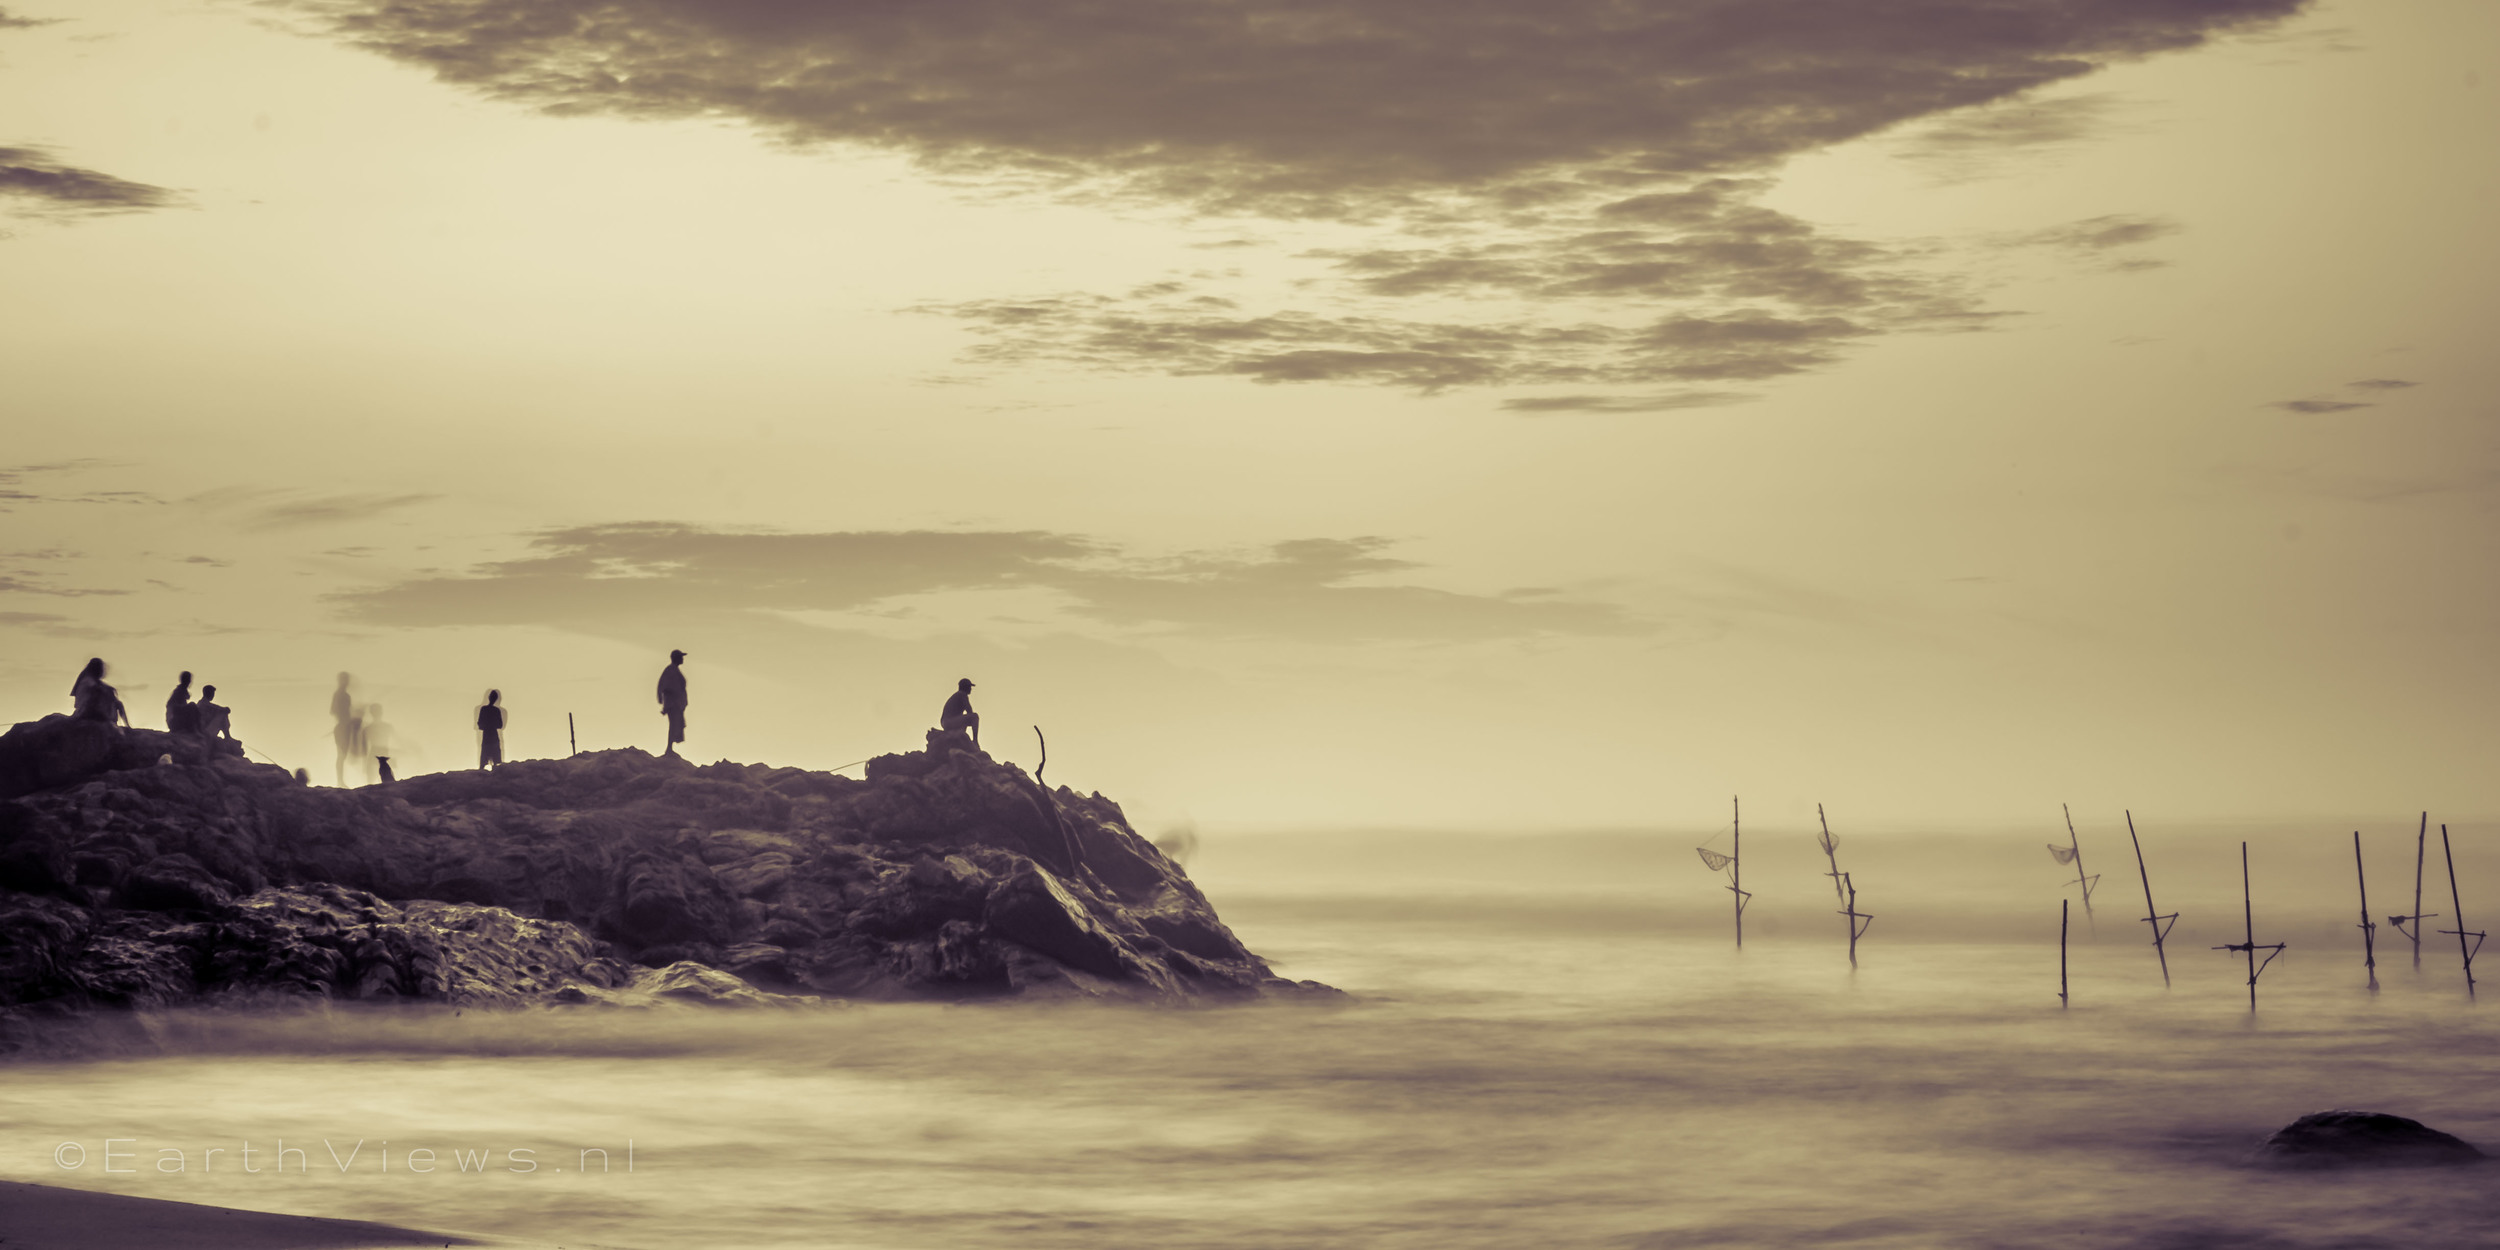 A (closer) shot of the people on the rocks on the beach of Weligama, Sri Lanka.